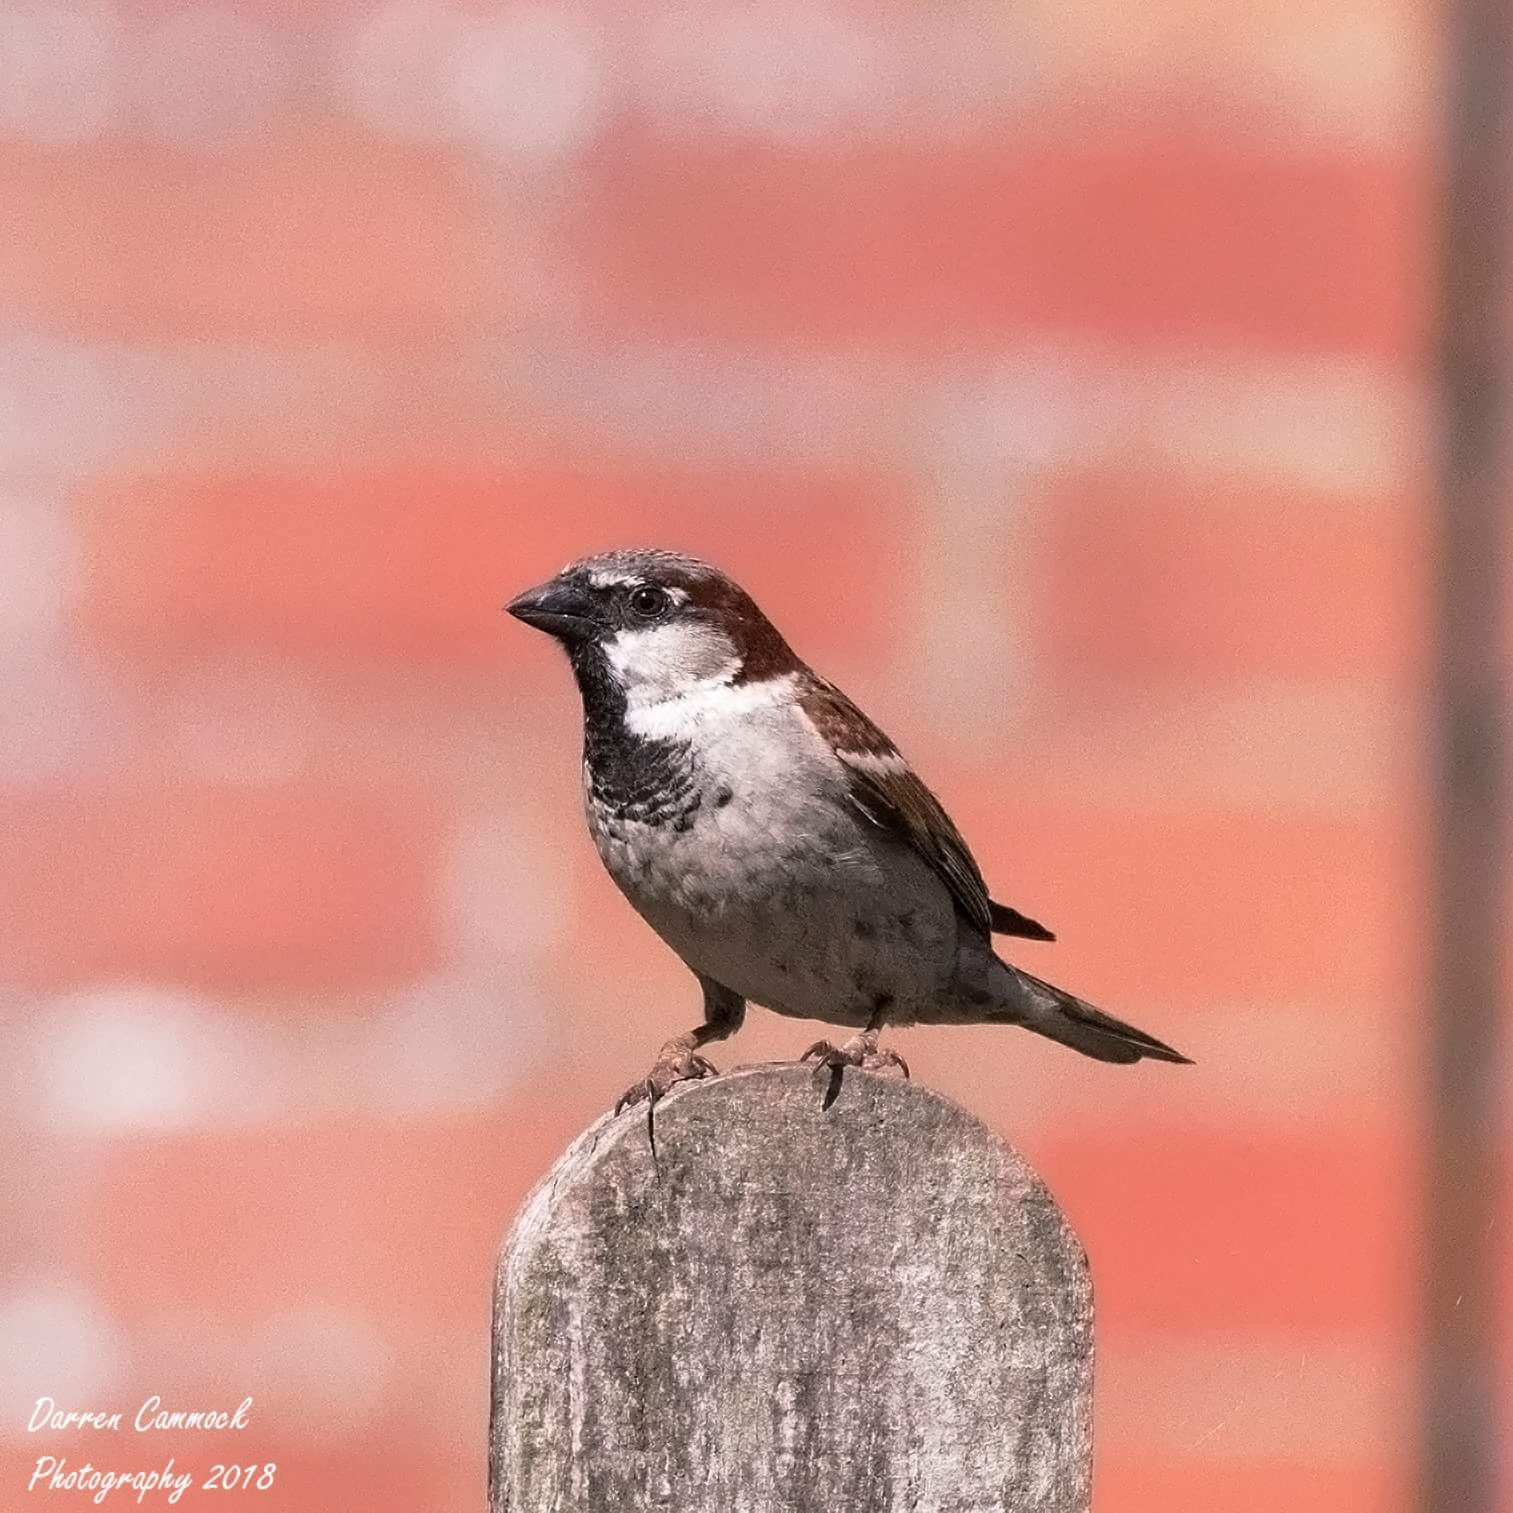 Male House Sparrow by darrencammock